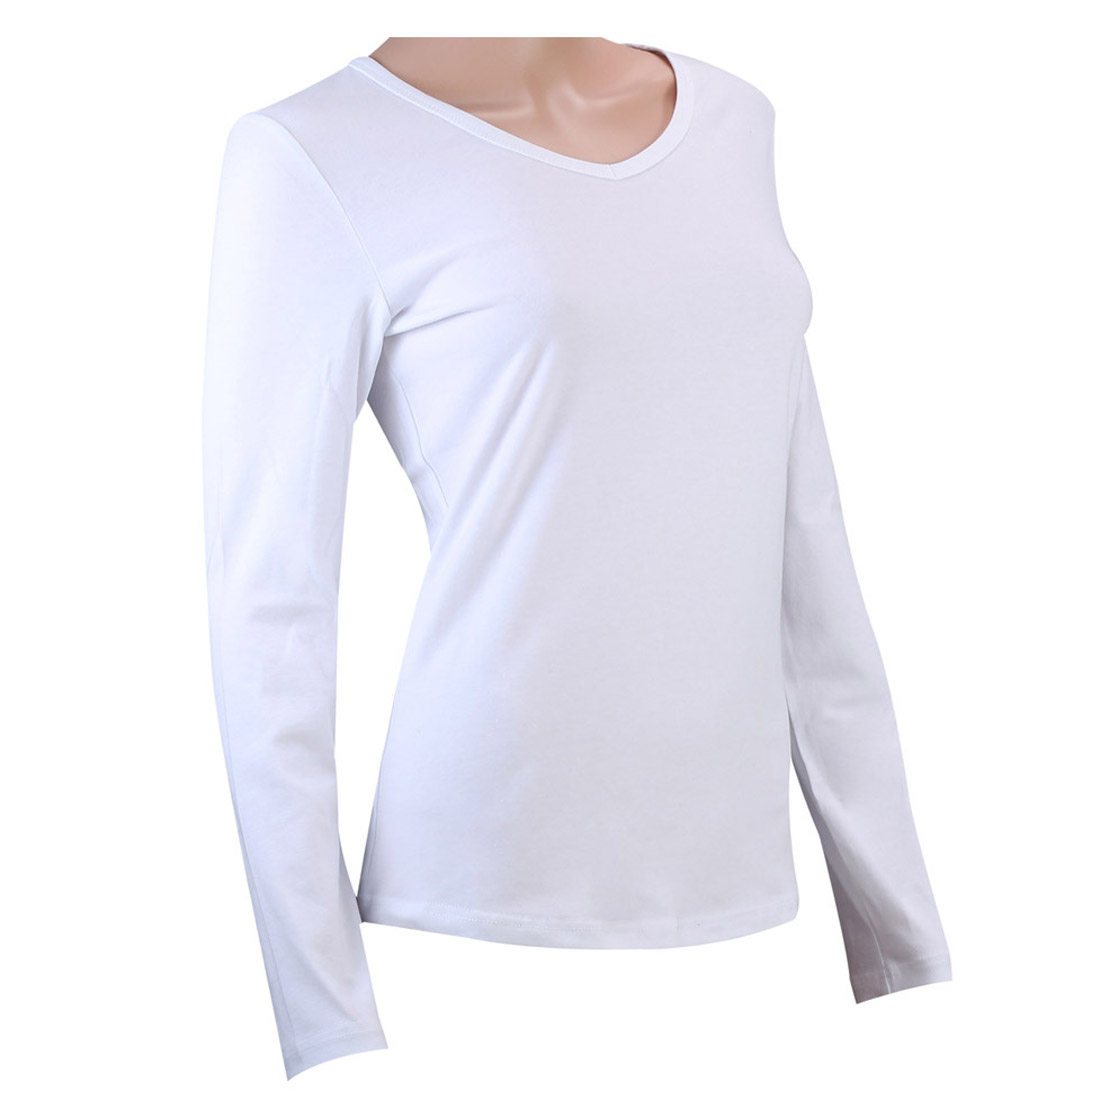 100 cotton womens long sleeve t shirt ladies t shirts for Women s 100 cotton long sleeve tee shirts